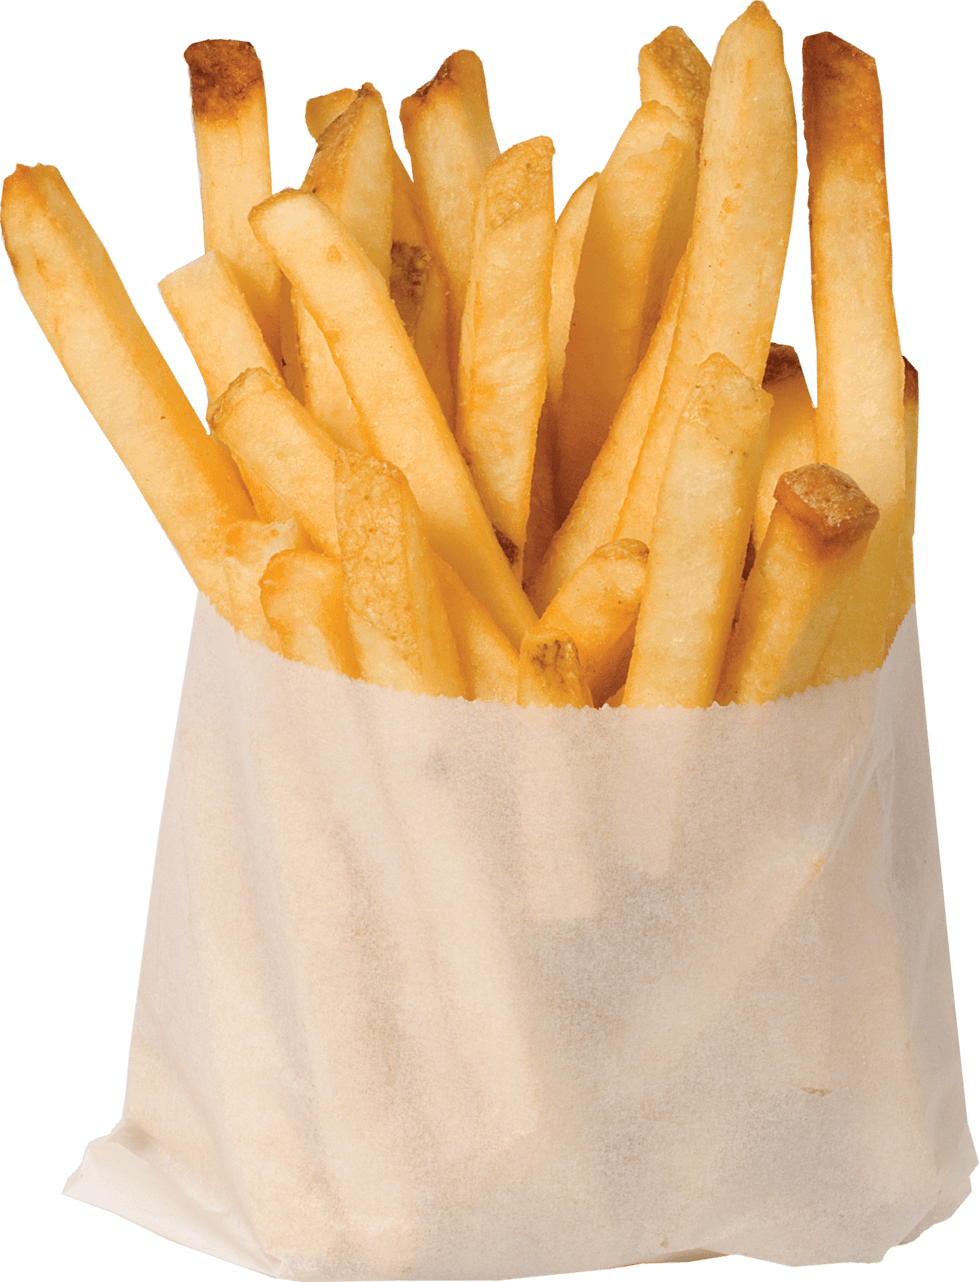 French transparent png stickpng. Fries clipart deep fried